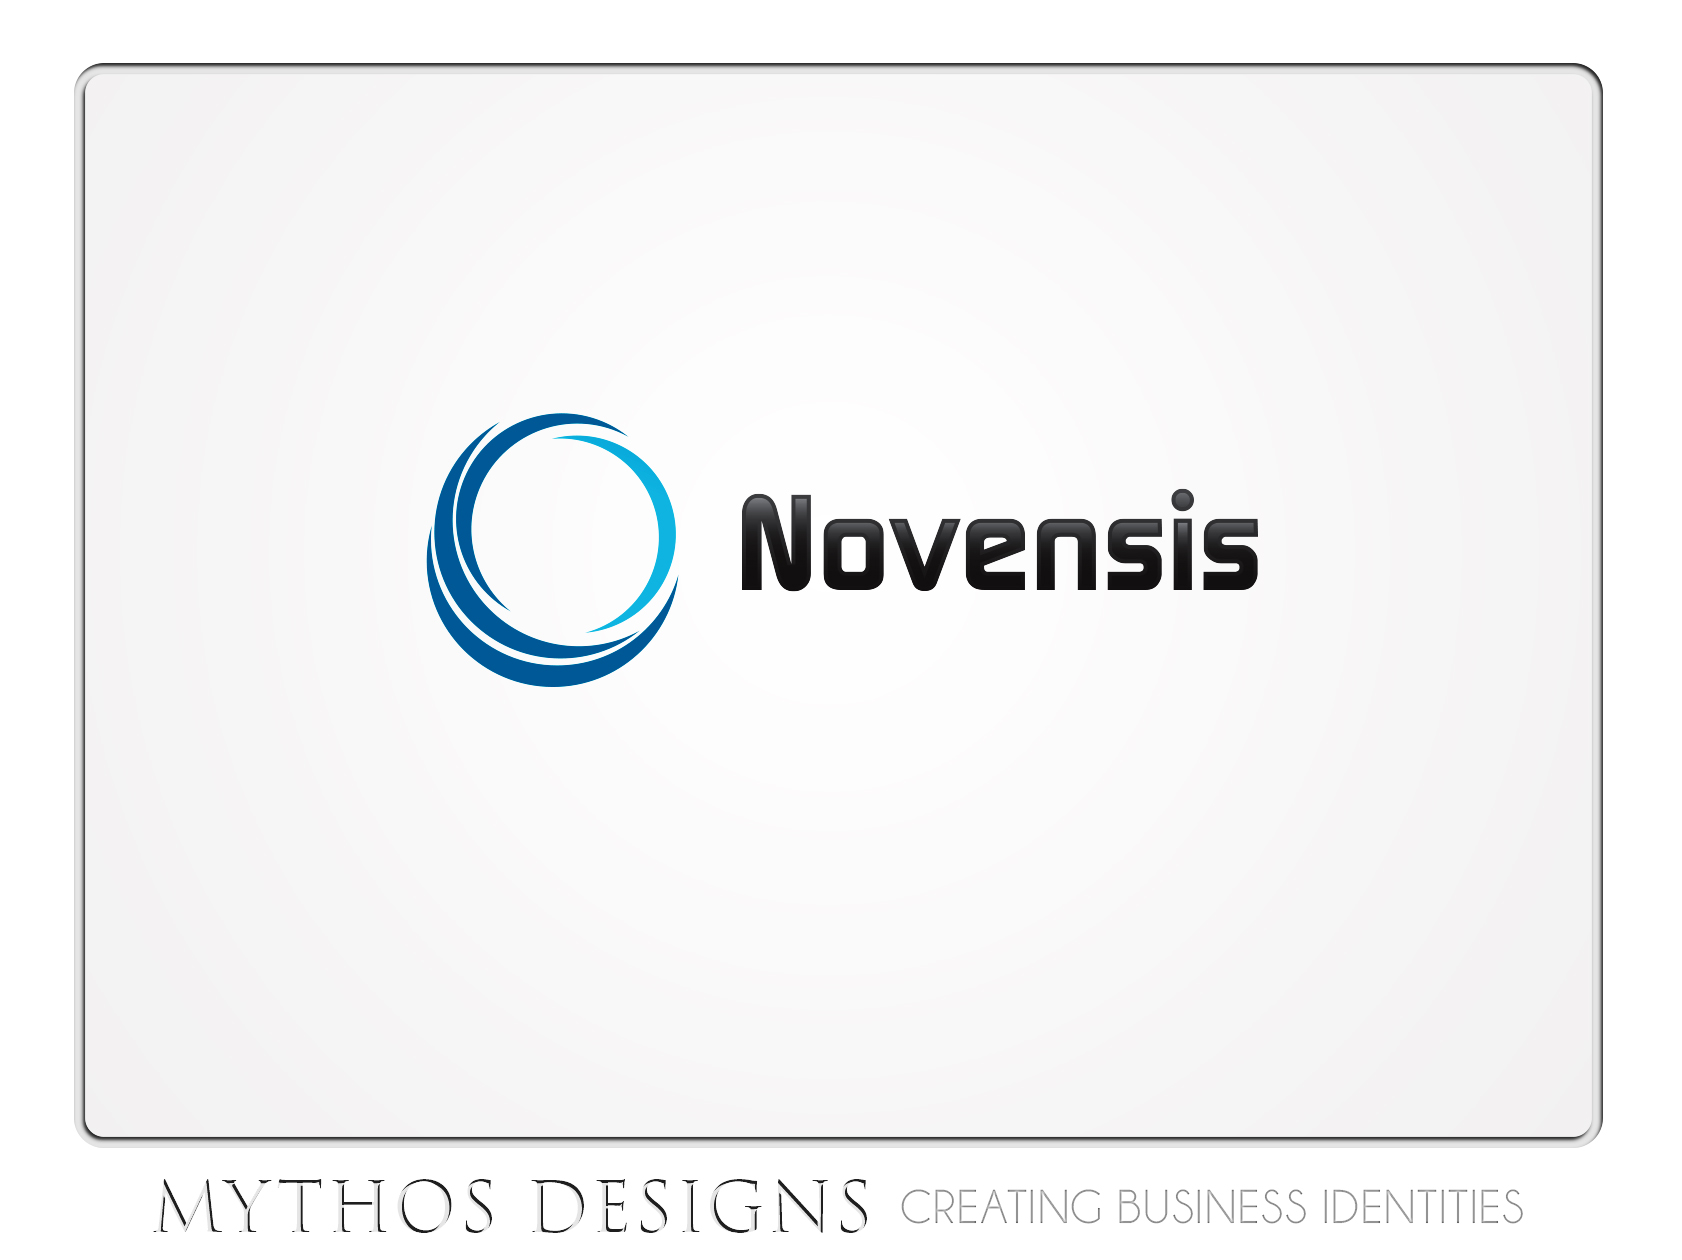 Logo Design by Mythos Designs - Entry No. 53 in the Logo Design Contest Novensis Logo Design.